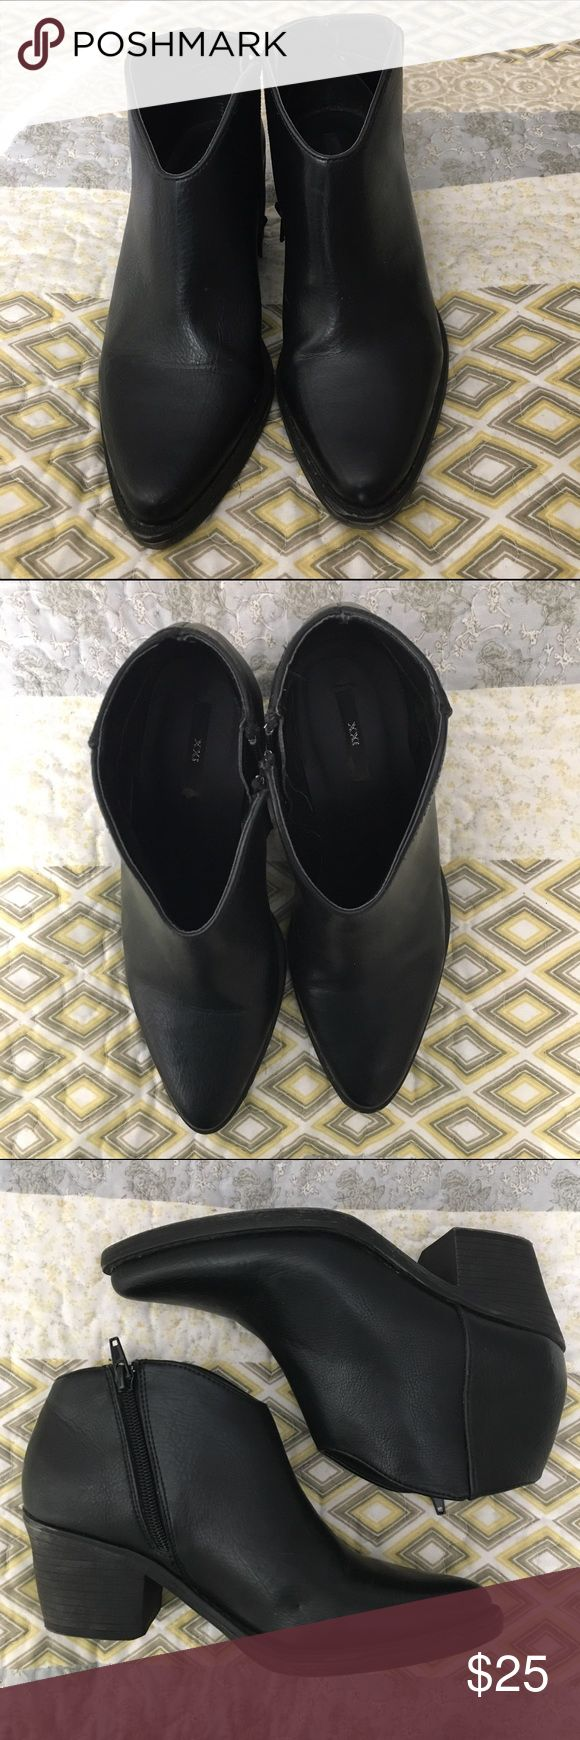 Black Ankle Boots Super fly, excellent condition. A narrower style, so maybe not good for wide feet. XXI Shoes Ankle Boots & Booties